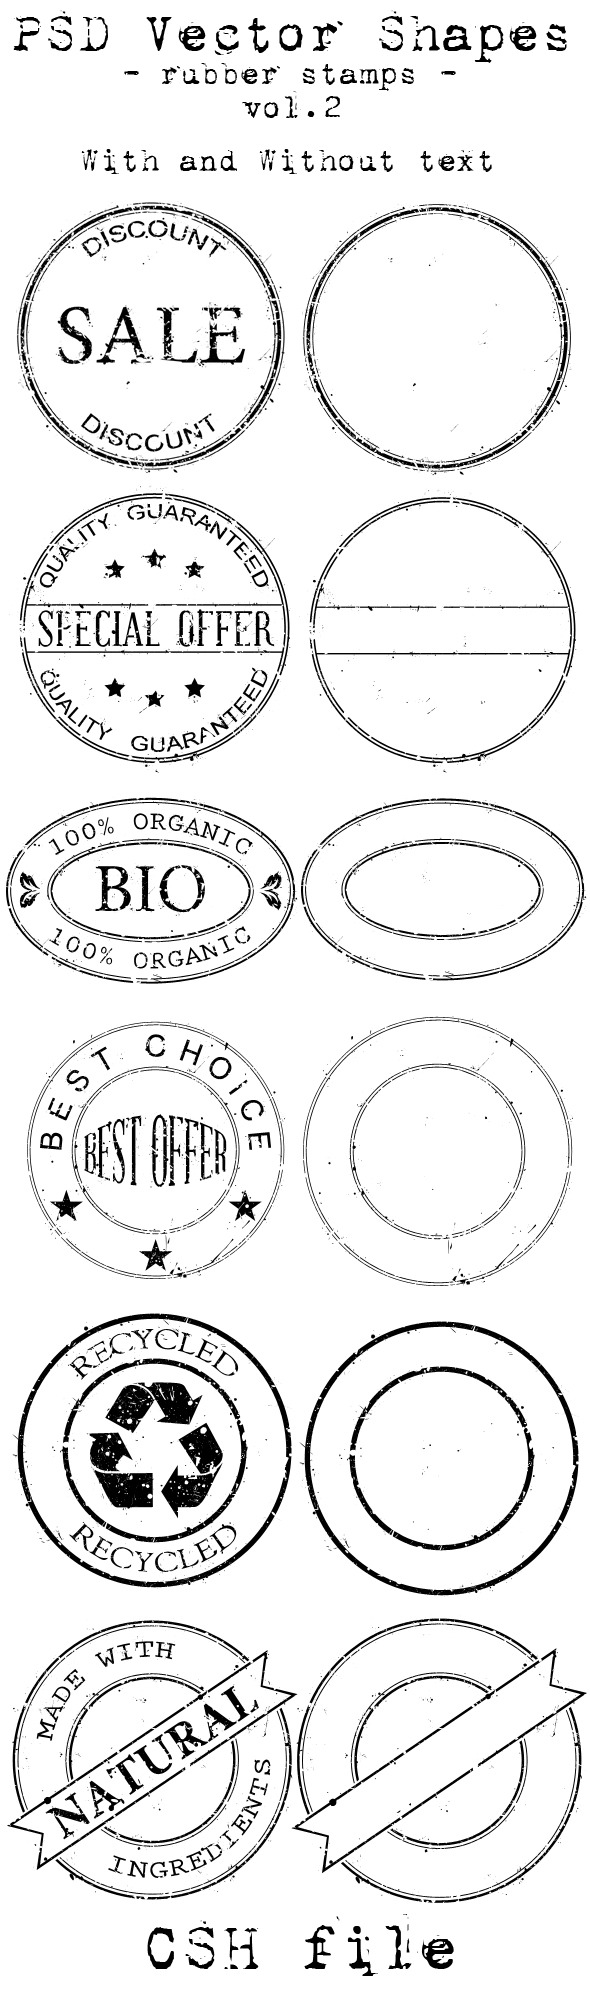 PSD Vector Shapes - rubber stamps - Vol 2. - Miscellaneous Shapes